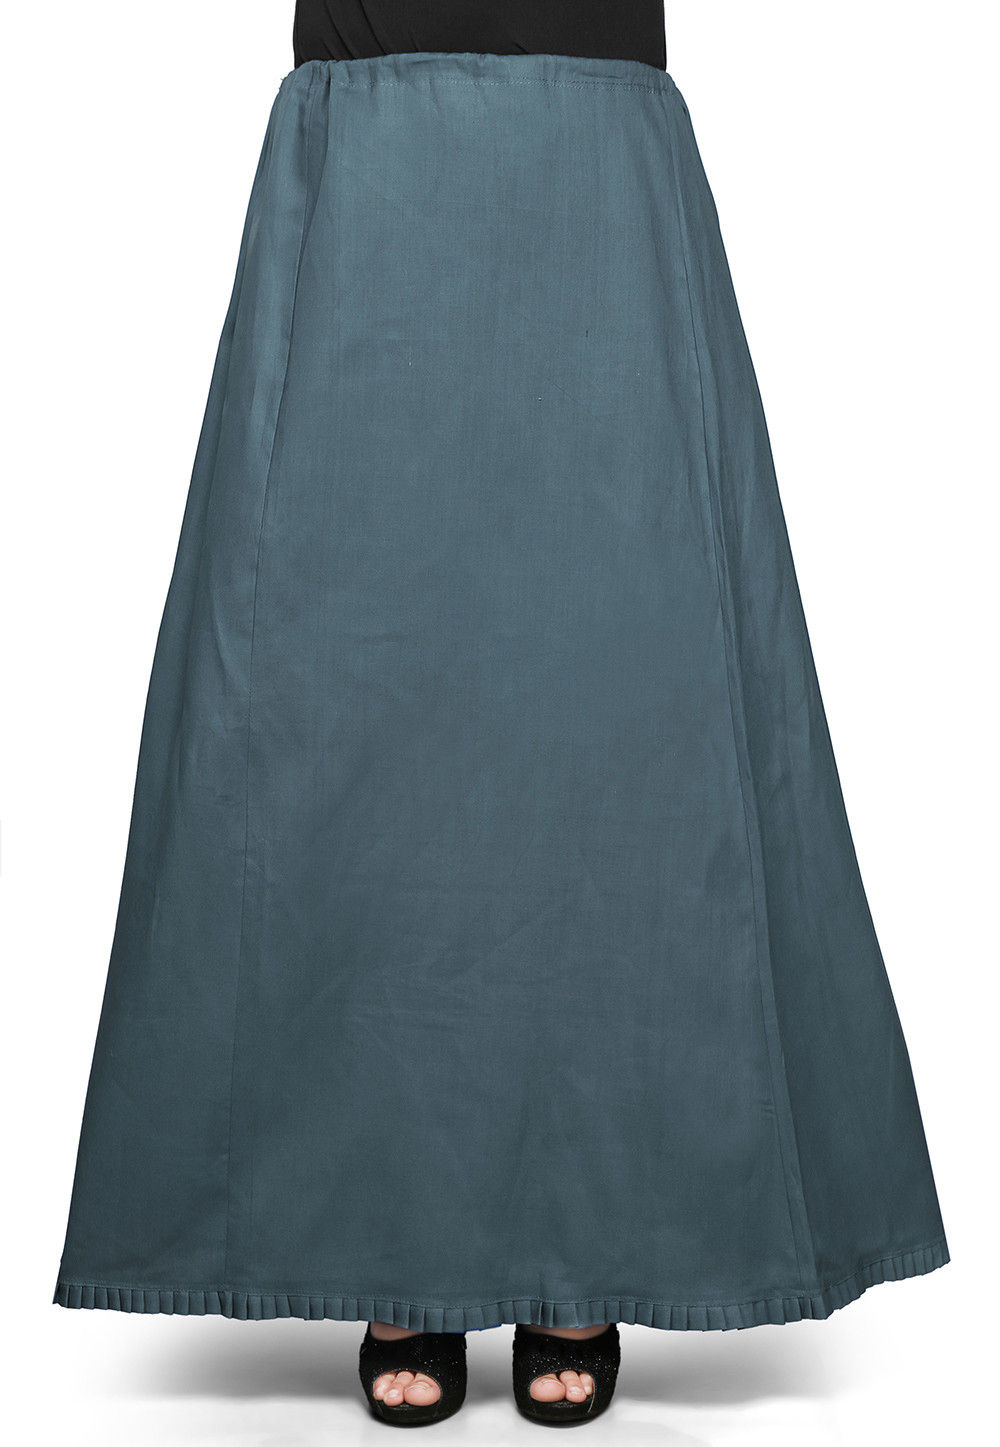 Cotton Petticoat in Dusty Teal Green